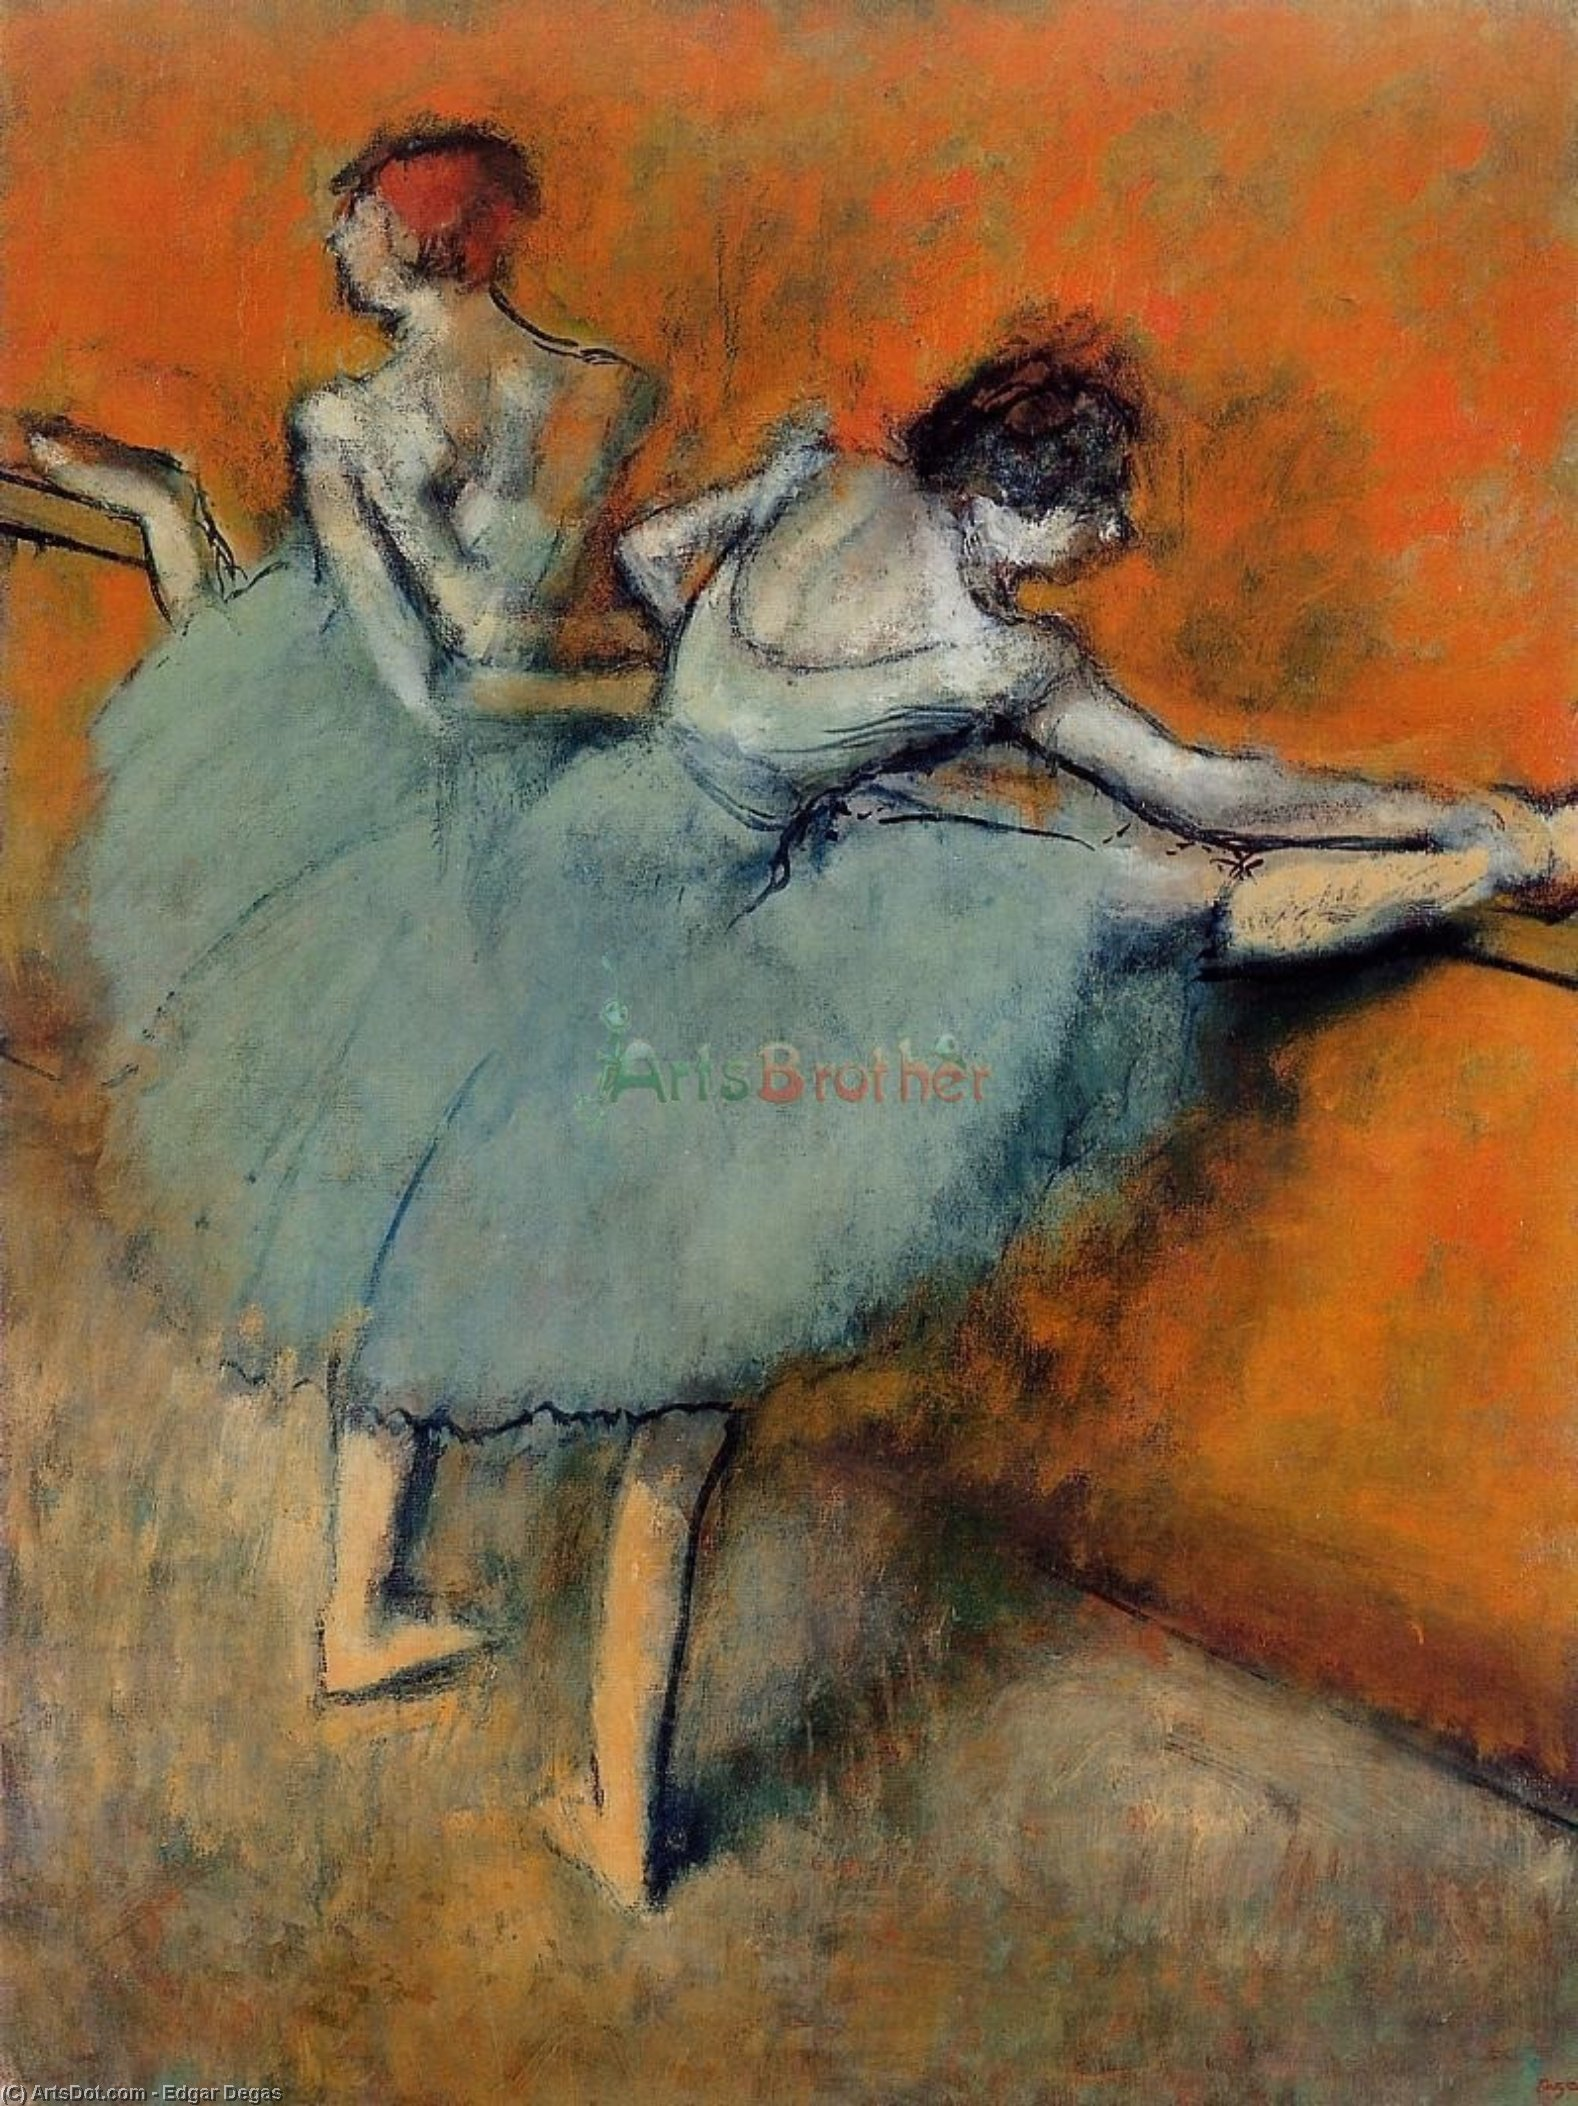 Wikioo.org - The Encyclopedia of Fine Arts - Painting, Artwork by Edgar Degas - Dancers at the Barre 1